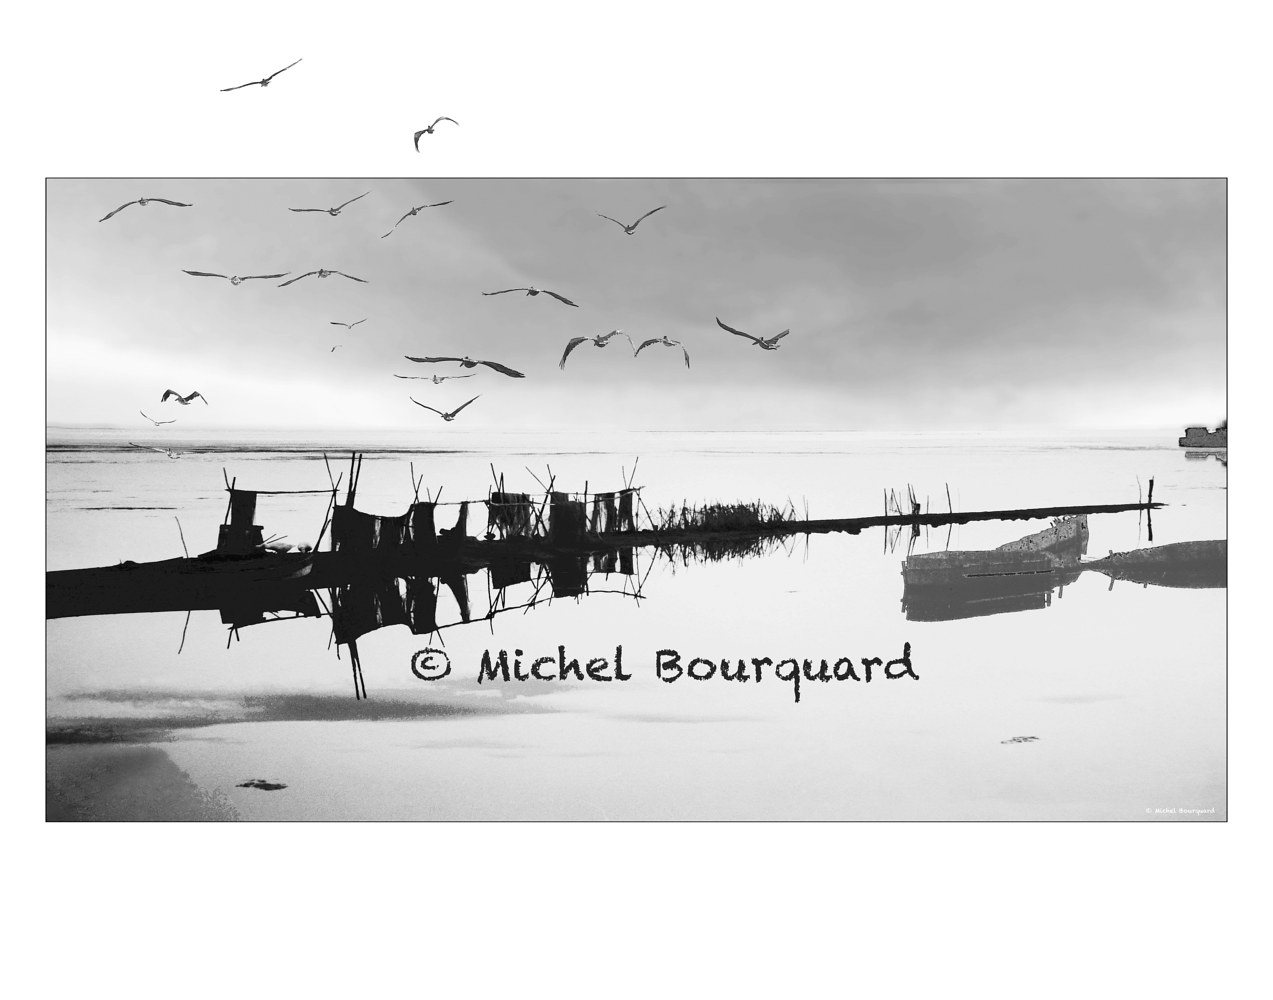 Somewhere In The Venezia Laguna -Birds flying out of the frame by Michel Bourquard